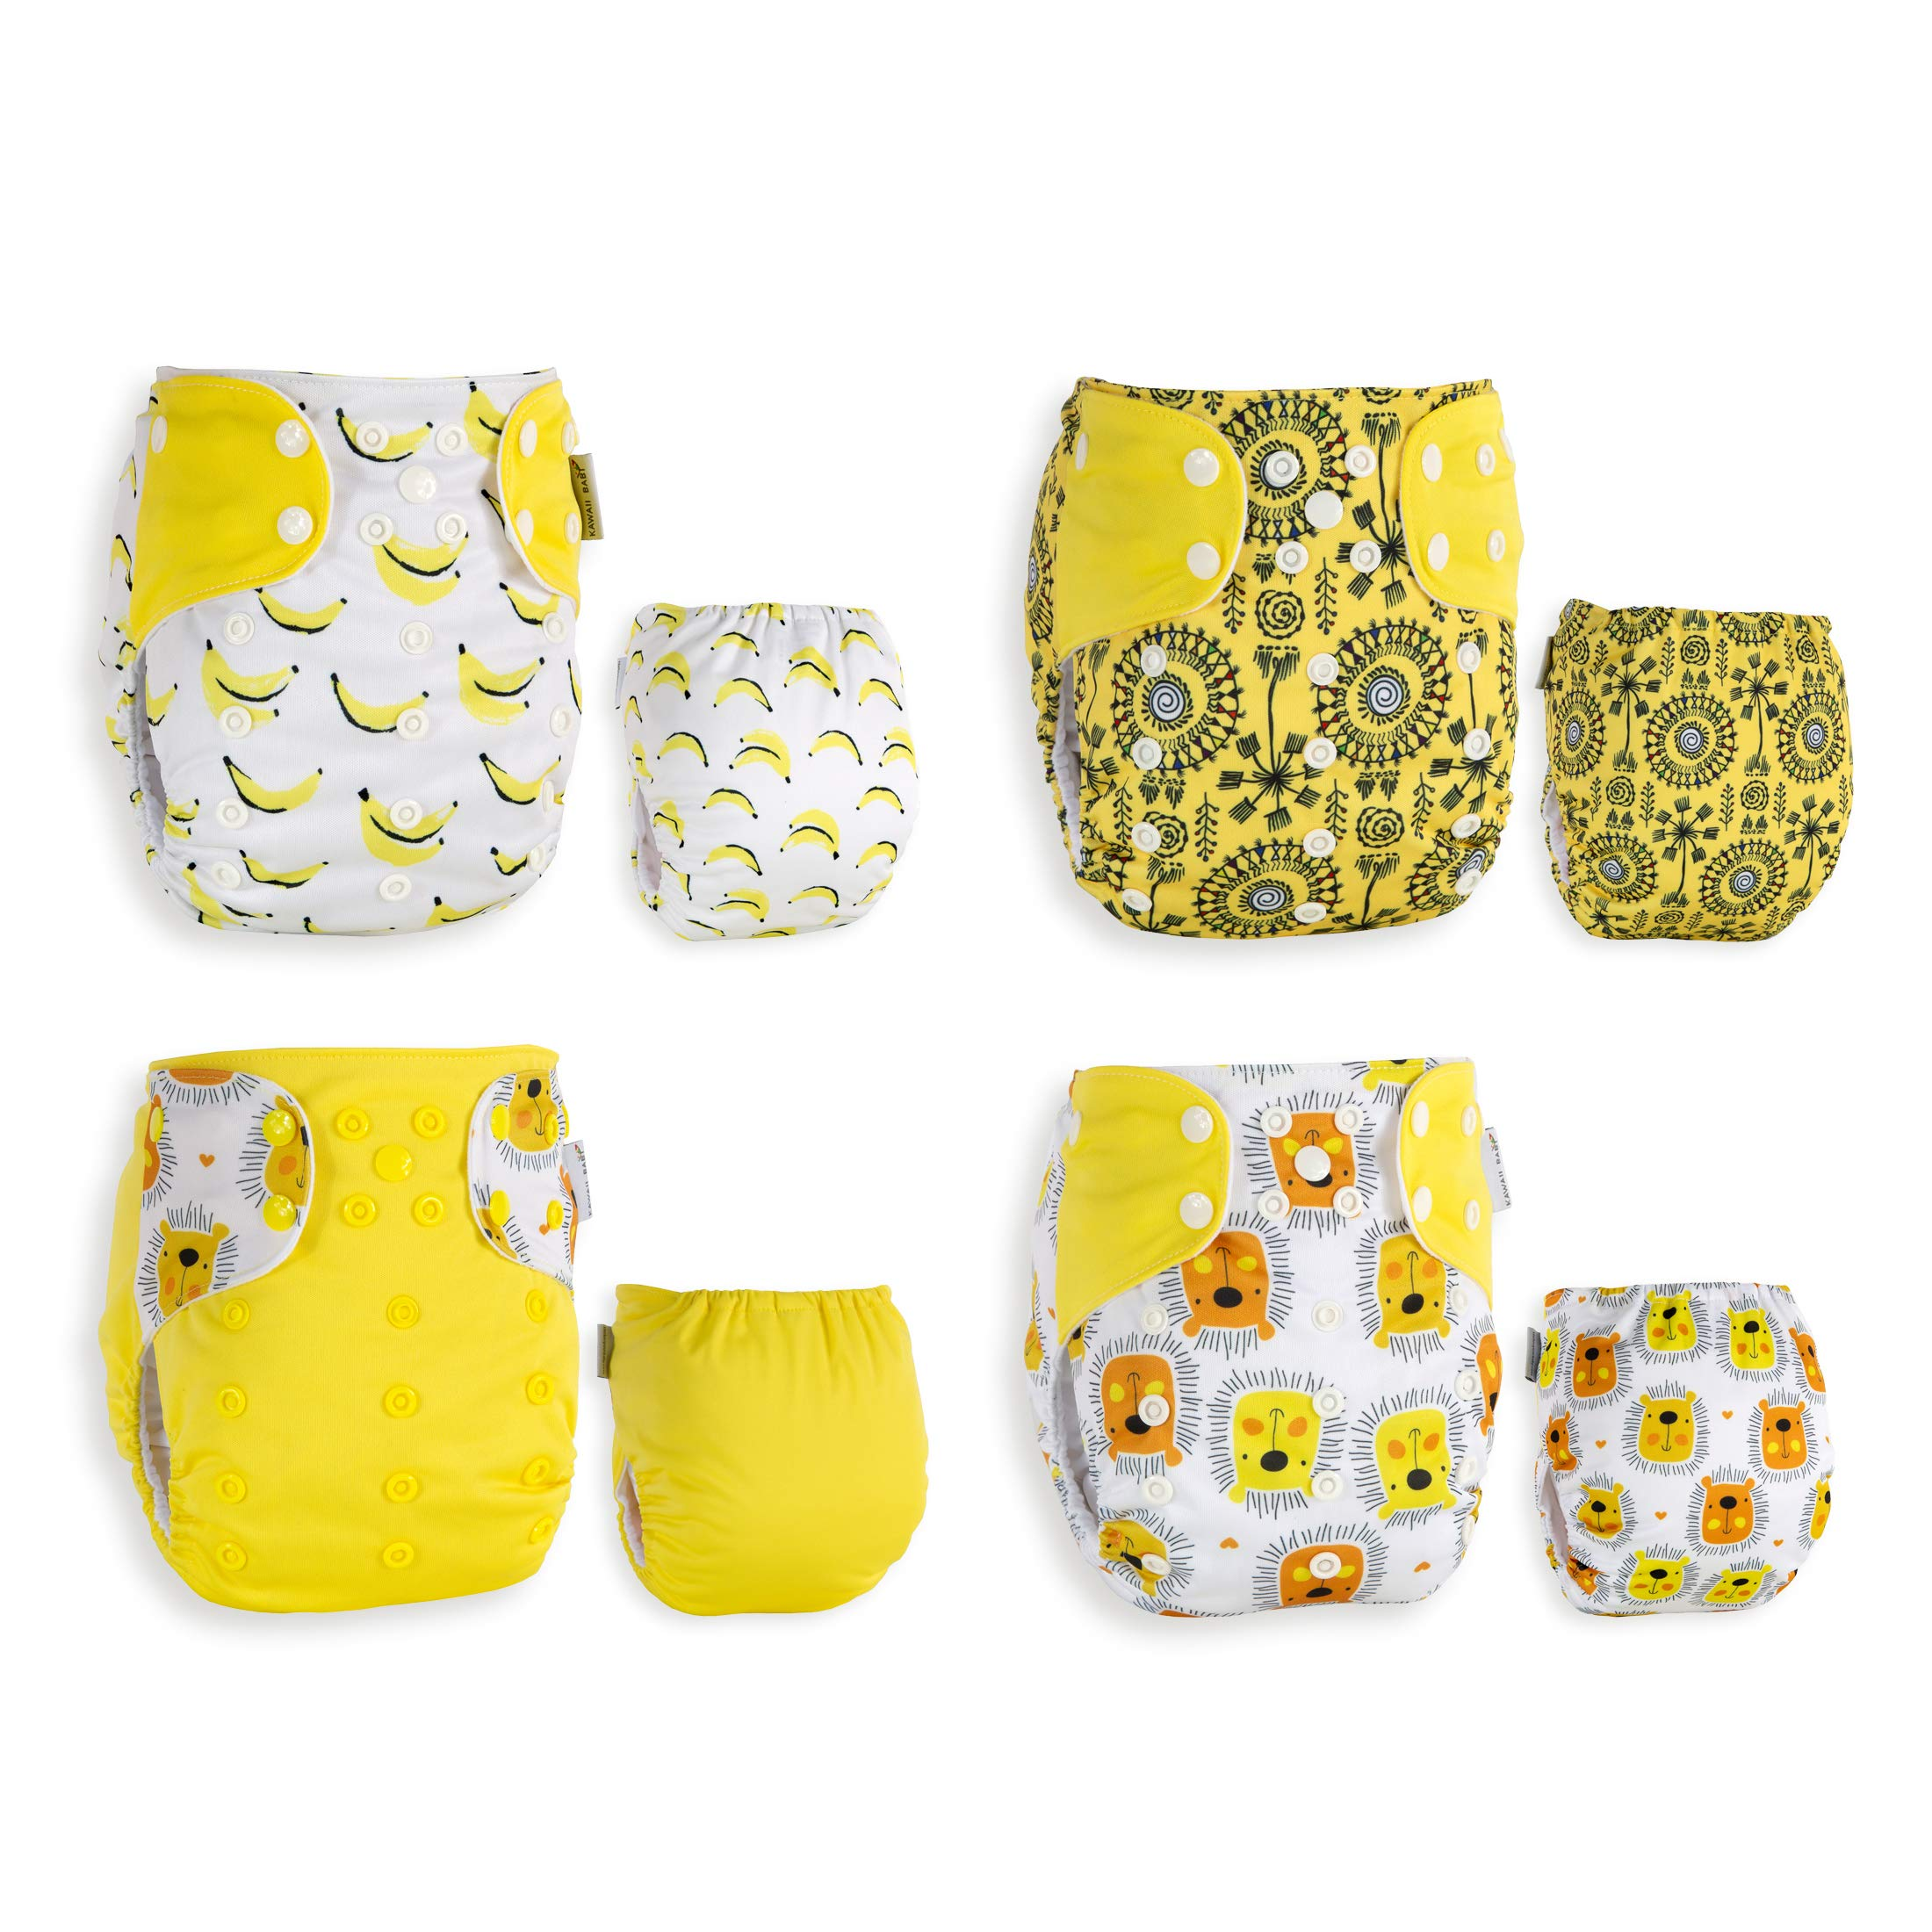 KaWaii Baby Pack of 4 One Size Cloth Diapers + 8 Premium (5-layered) Bamboo Inserts 8-36 lbs (Banana Smile)